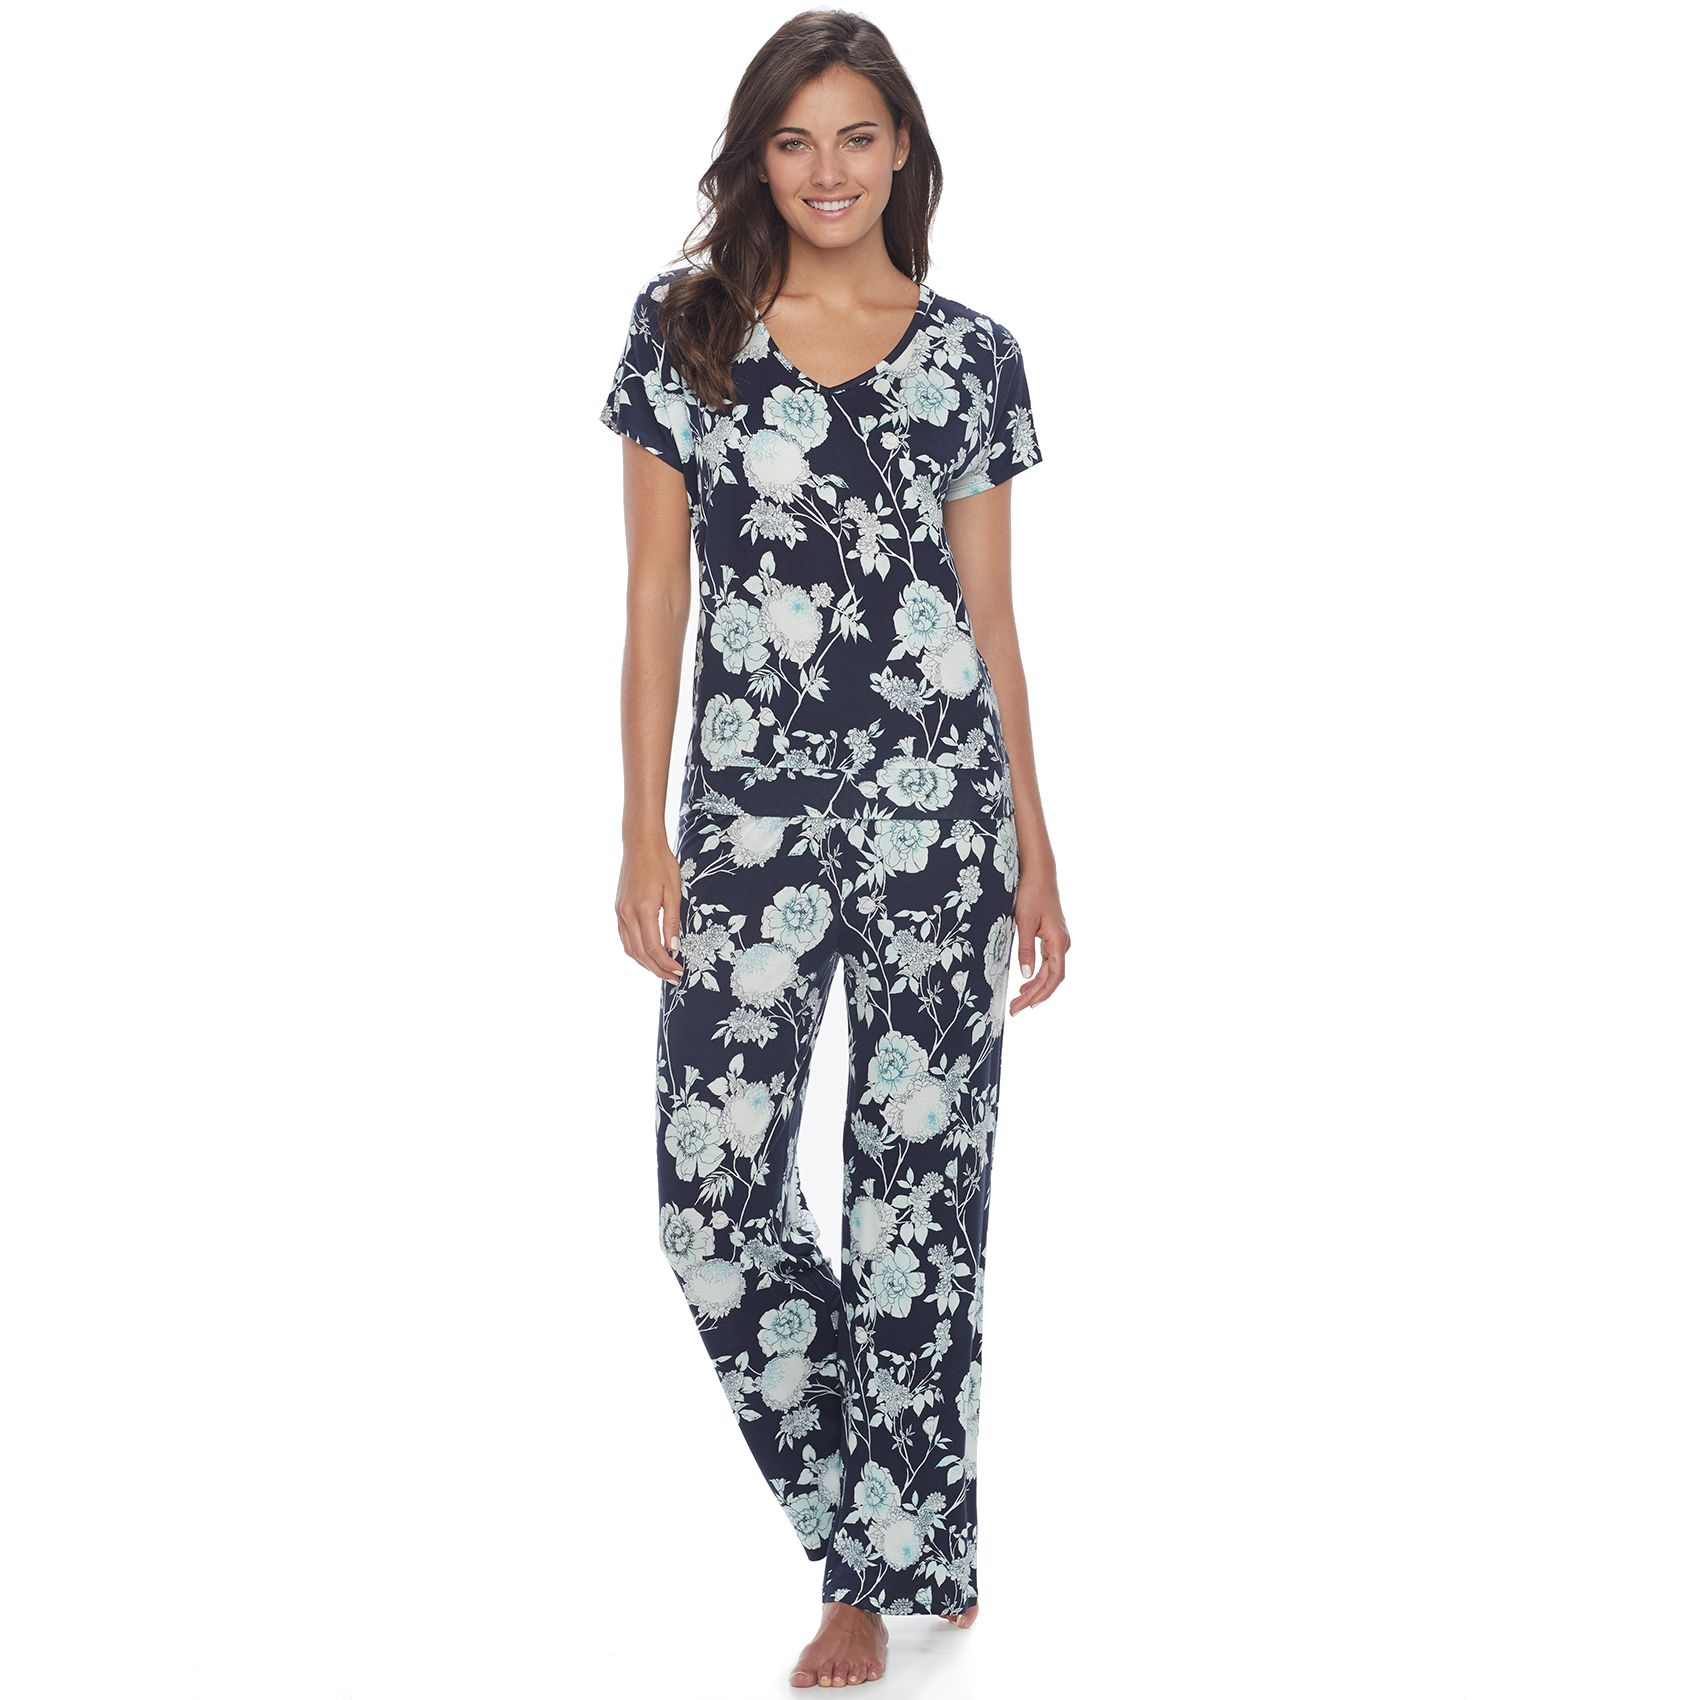 2979239_Navy_Floral?wid=240&hei=240&op_sharpen=1 womens pajamas, robes & sleepwear kohl's,Womens Underwear Or Night Clothes 8 Letters